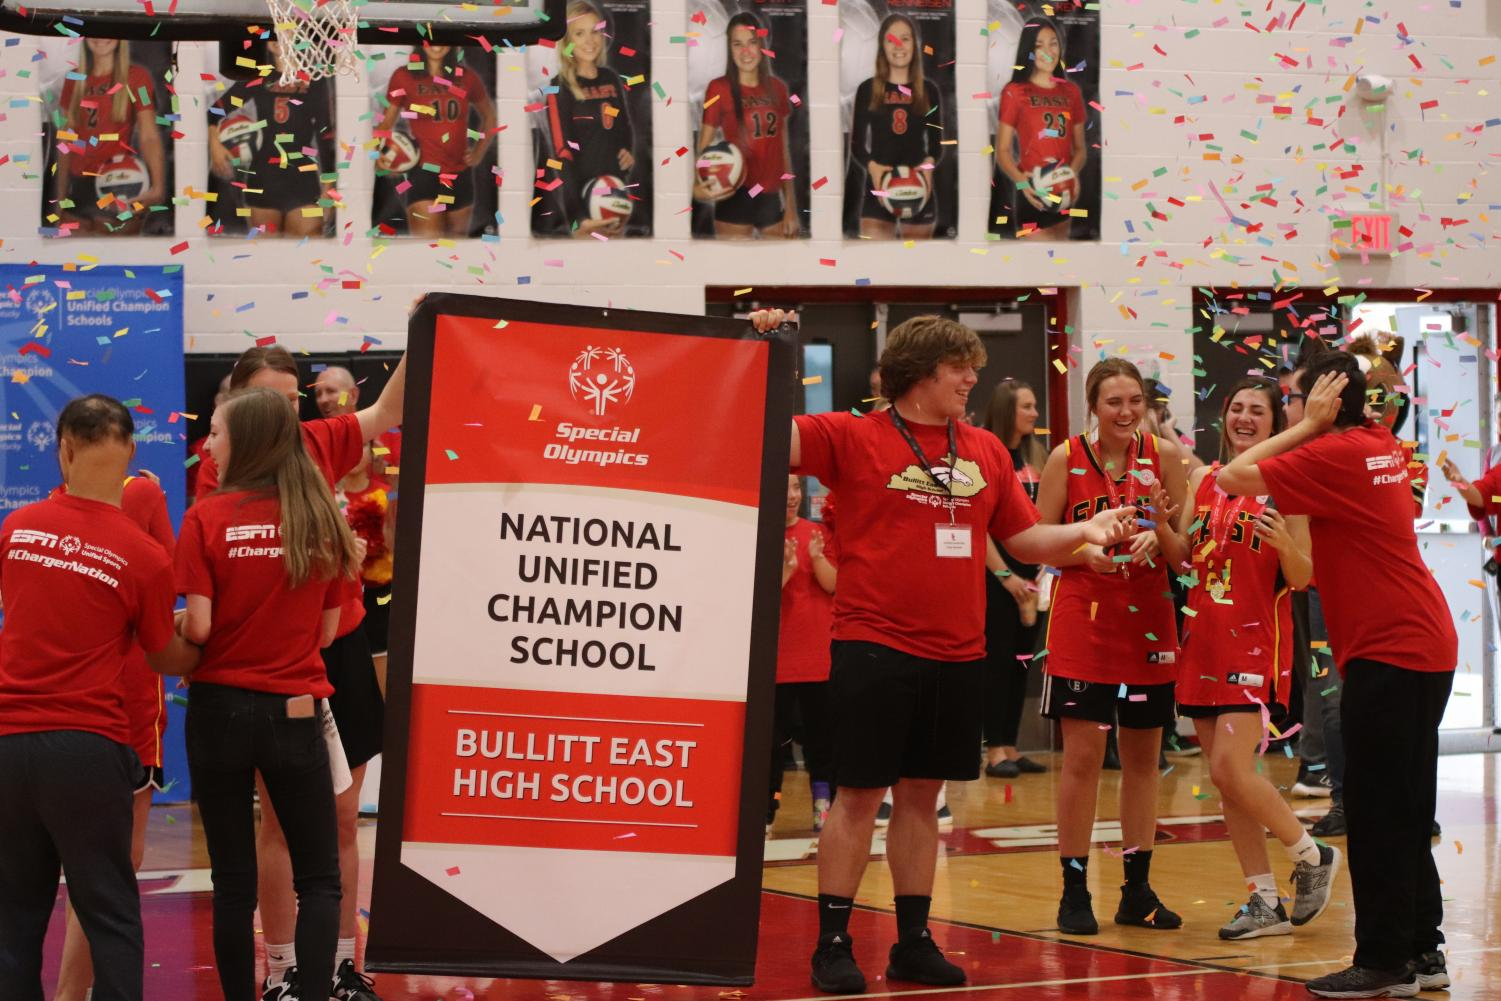 Senior Conner Groves holds the National Unified Champion School banner in front of the crowd. ESPN and Special Olympics presented this banner during the assembly. Groves said,